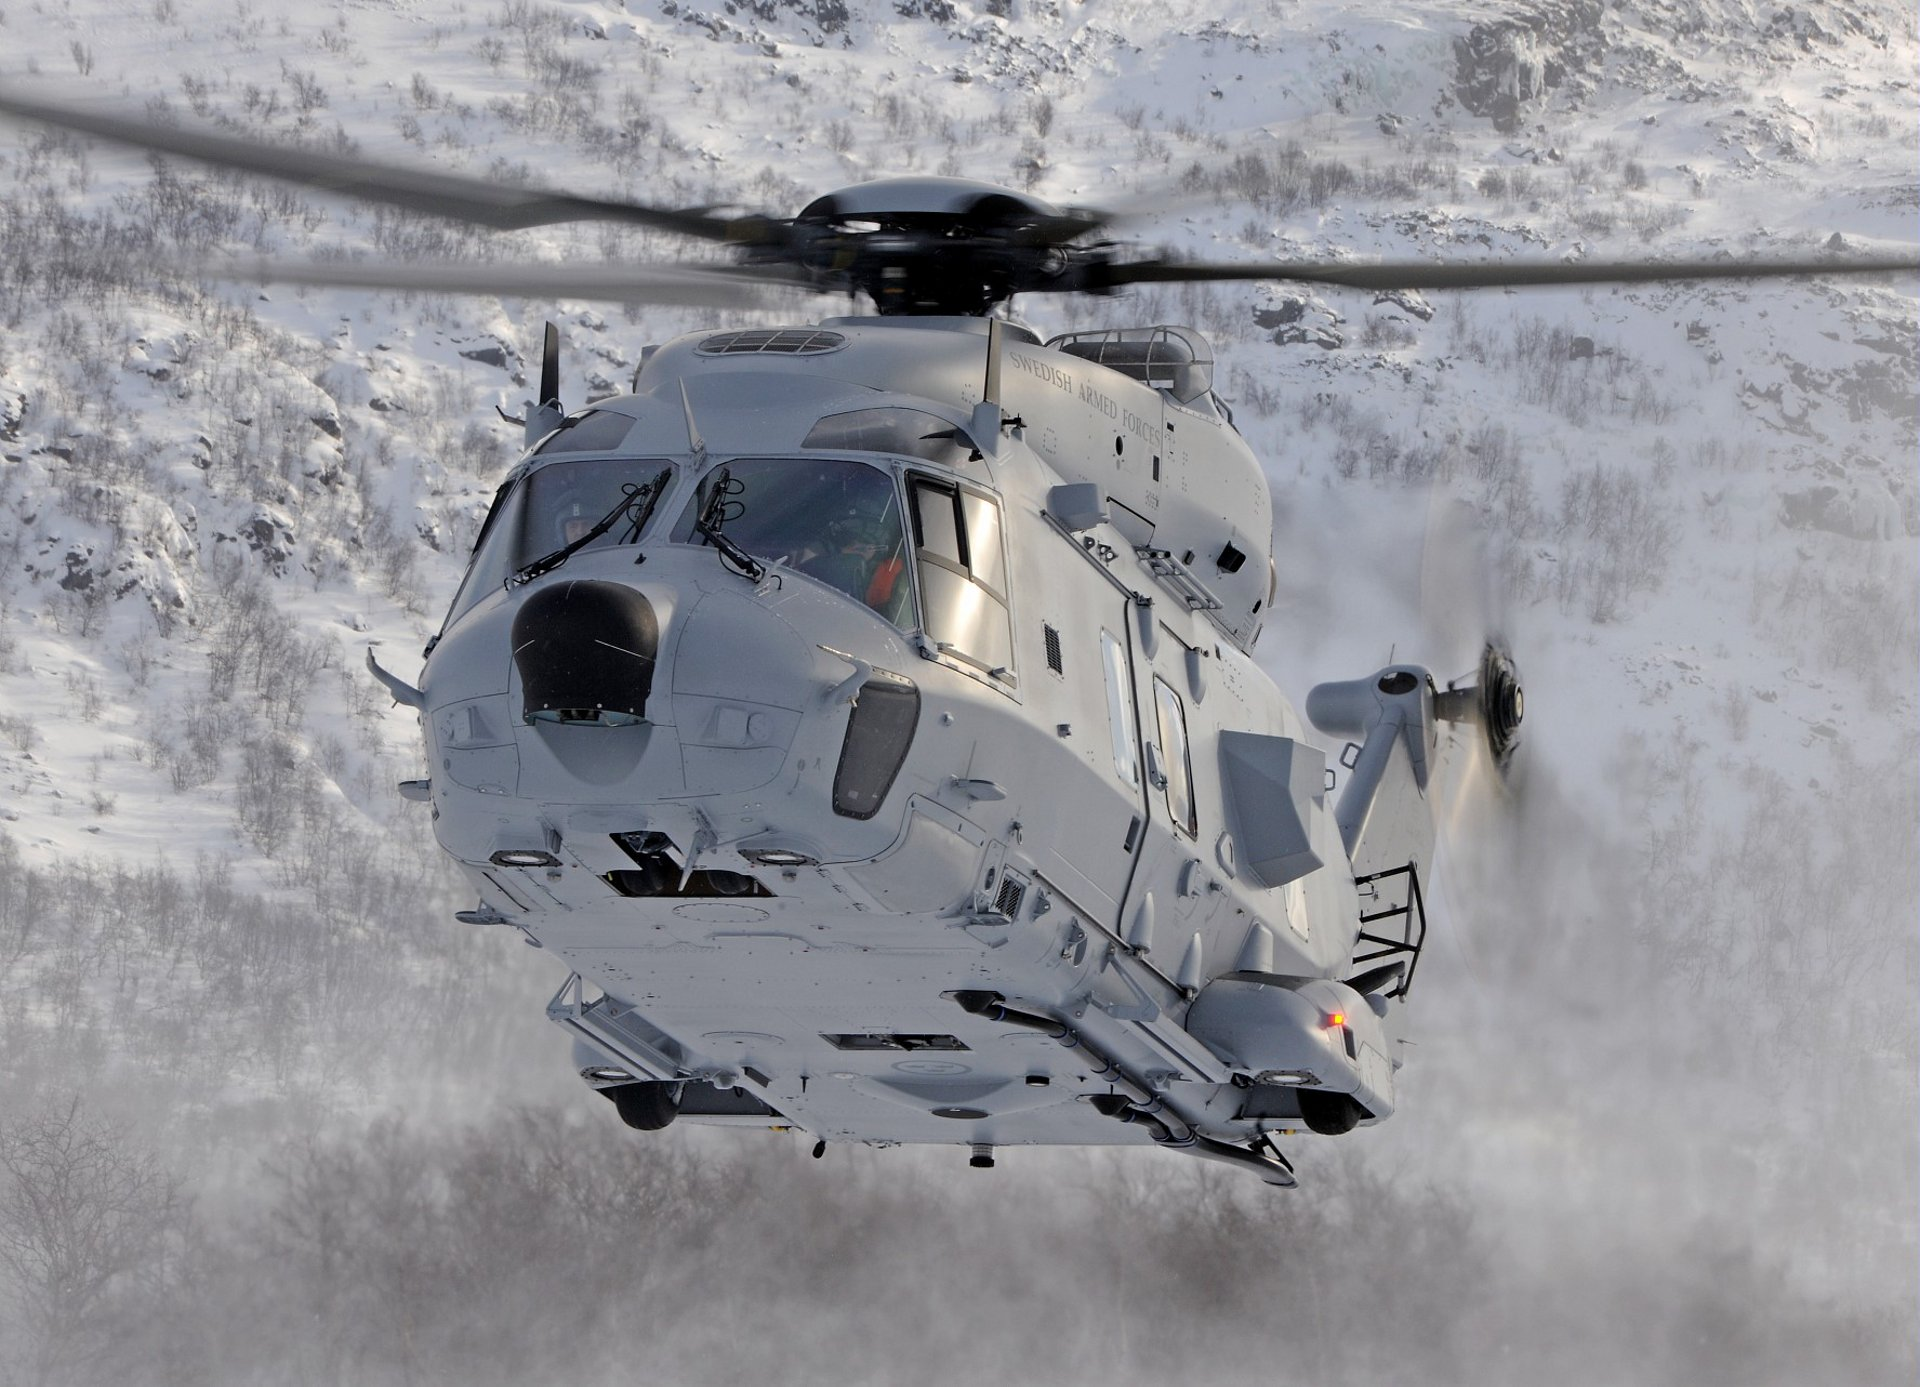 Swedish Armed Forces' NH90 in flight